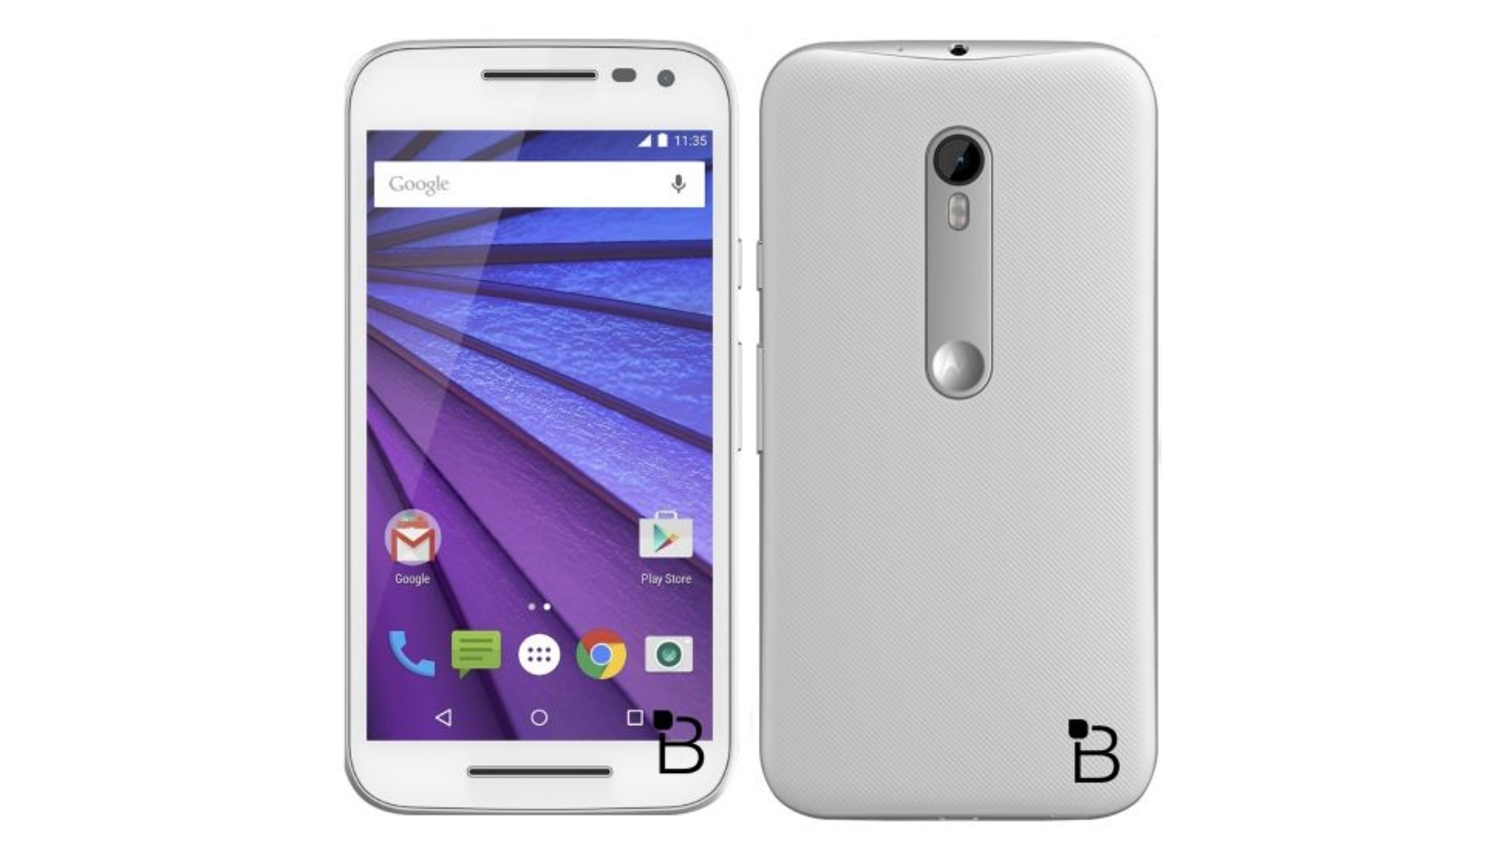 The New Moto G Is Bringing Sexy Back